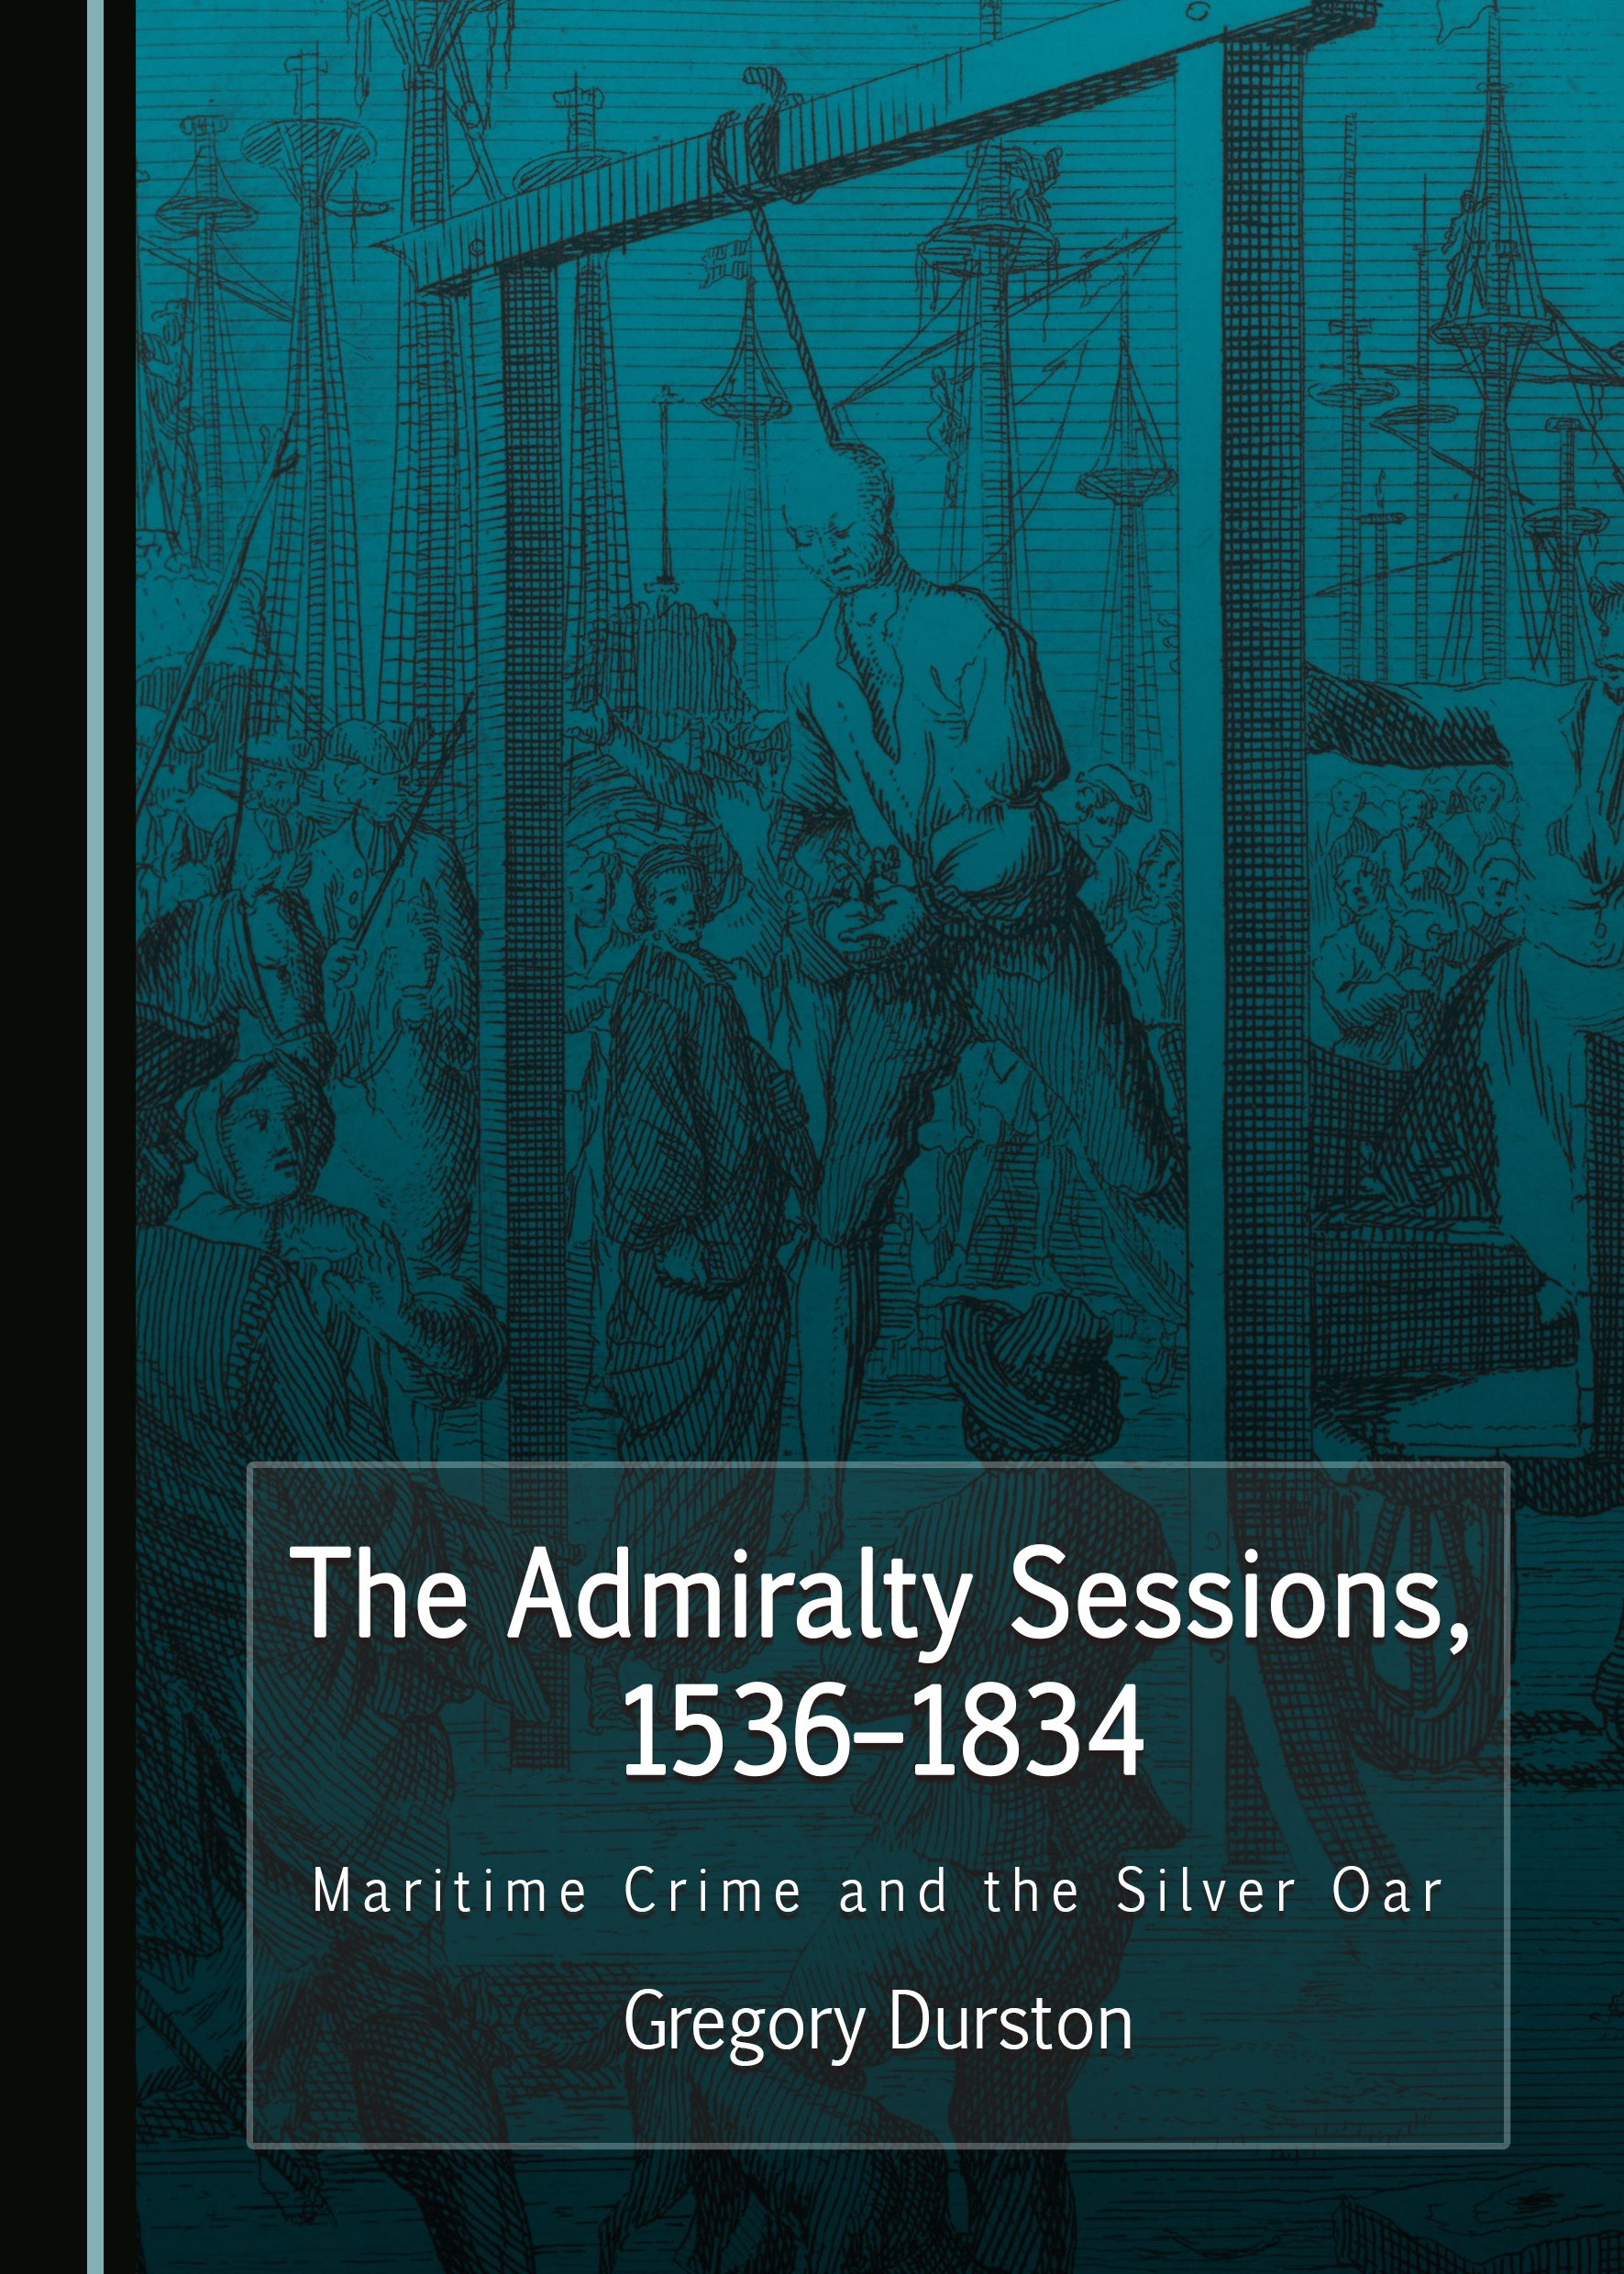 The Admiralty Sessions, 1536-1834: Maritime Crime and the Silver Oar